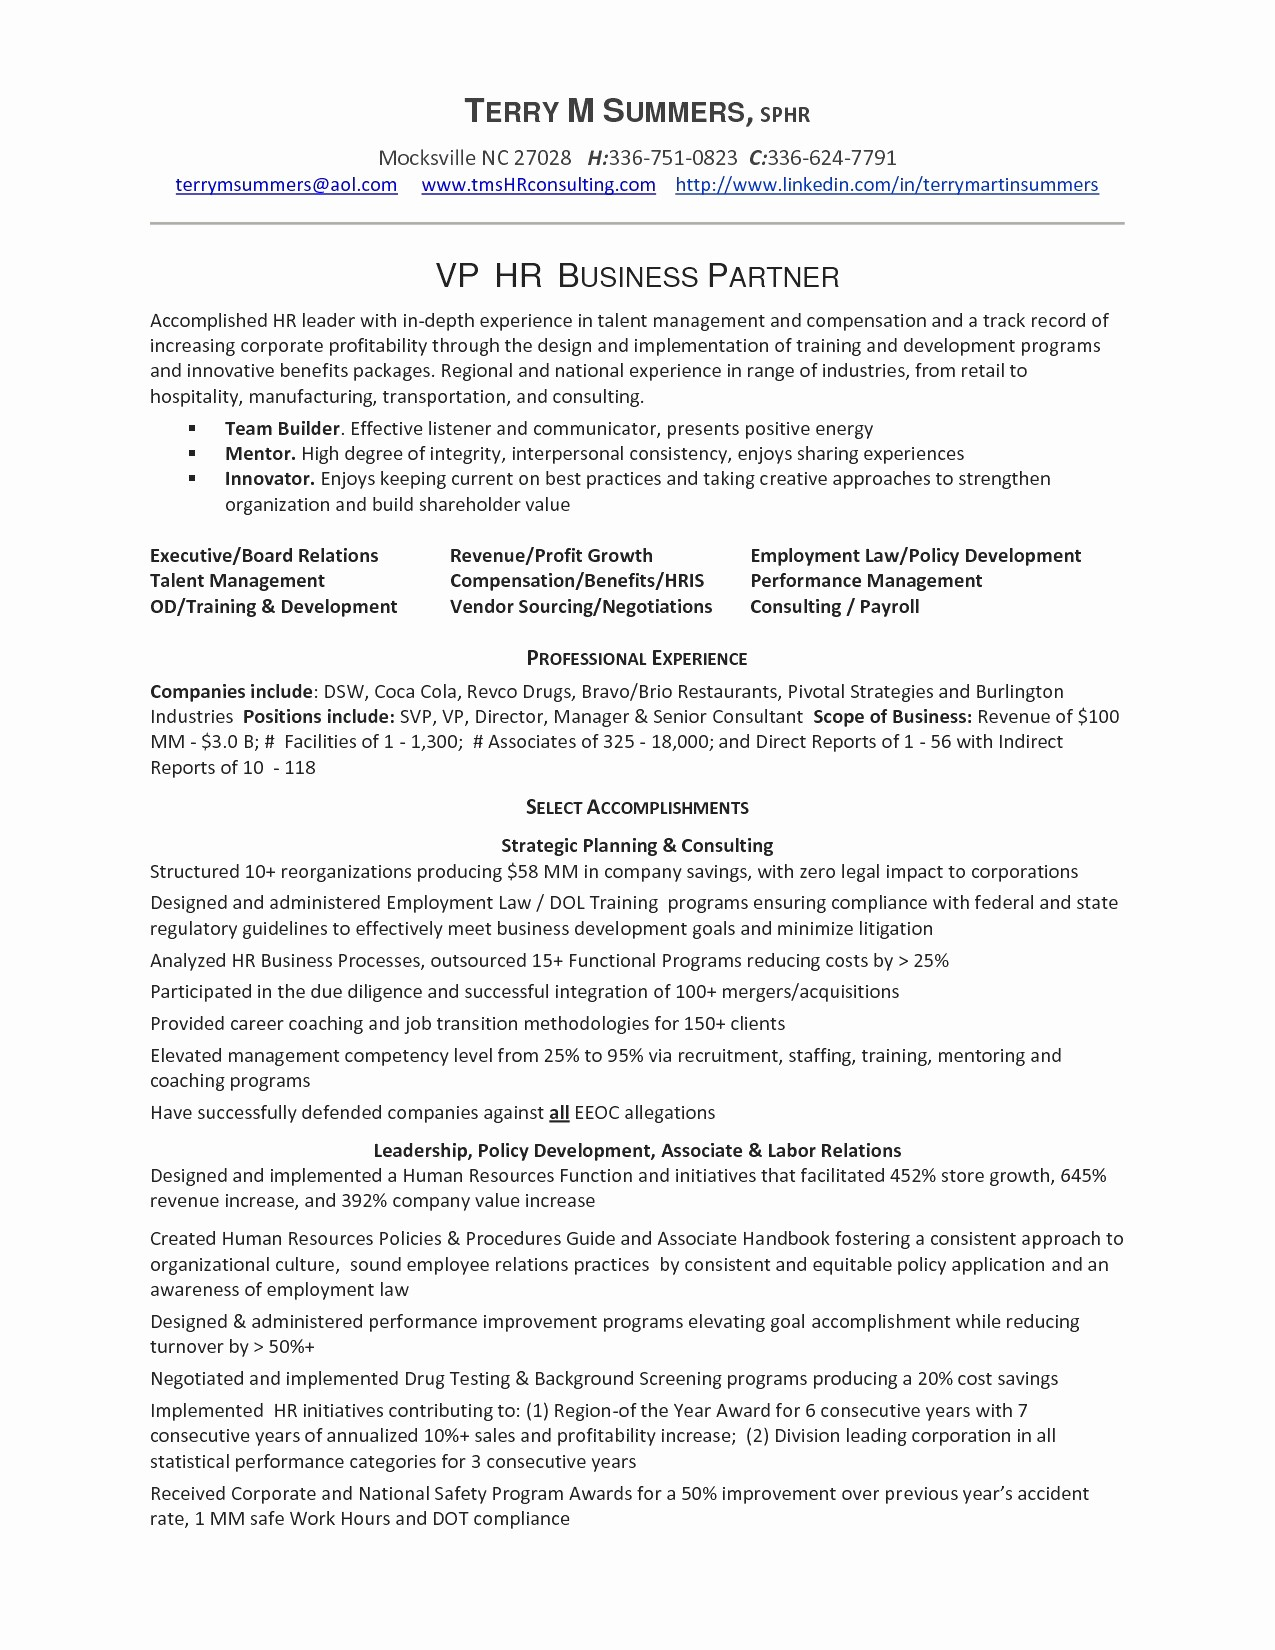 Computer Science Internship Resume - Puter Science Internship Resume